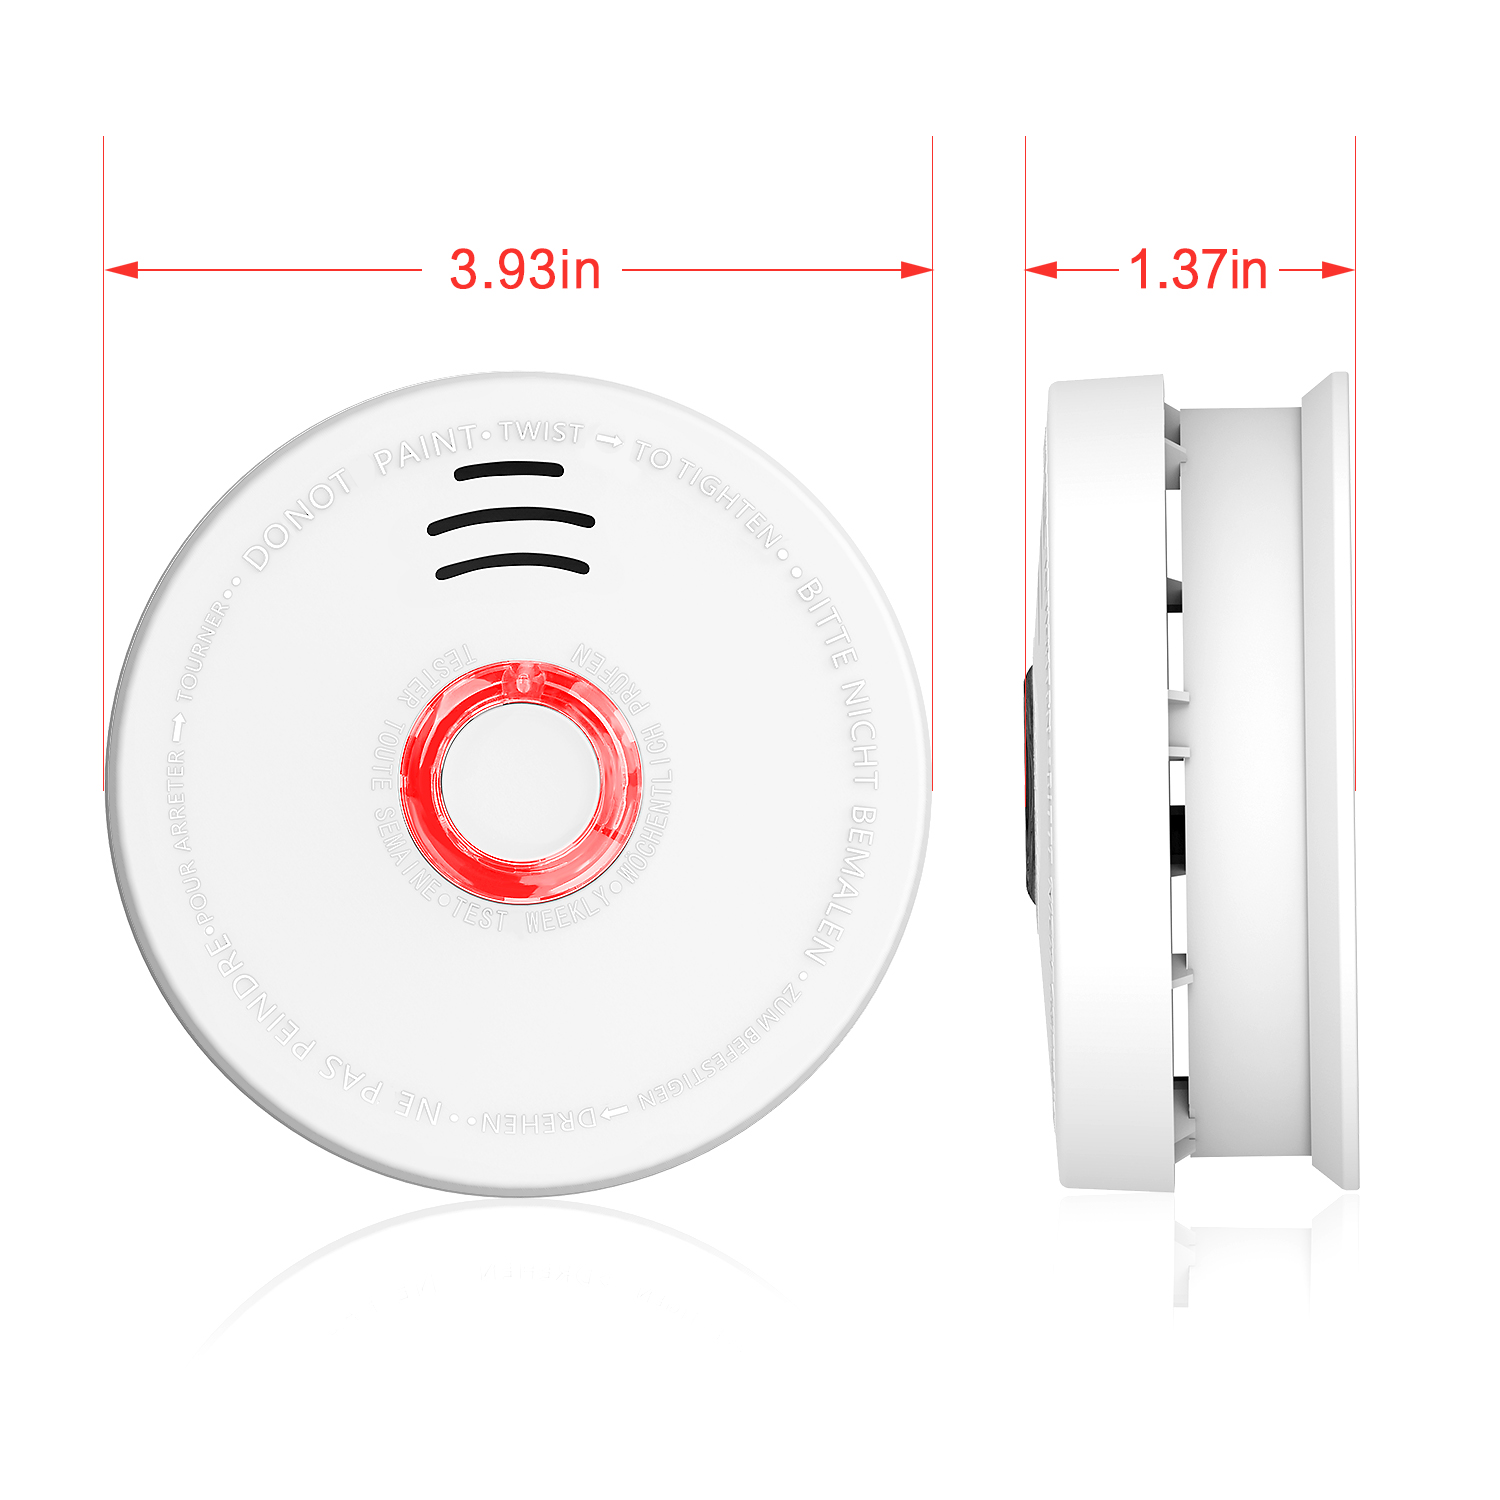 2 Pack Smoke Detector, Battery-Operated(Not Hardwired) Smoke and Fire Alarm/Detector with Test Button, 10 Years Photoelectric Smoke Alarm with UL Listed(9V Battery included)